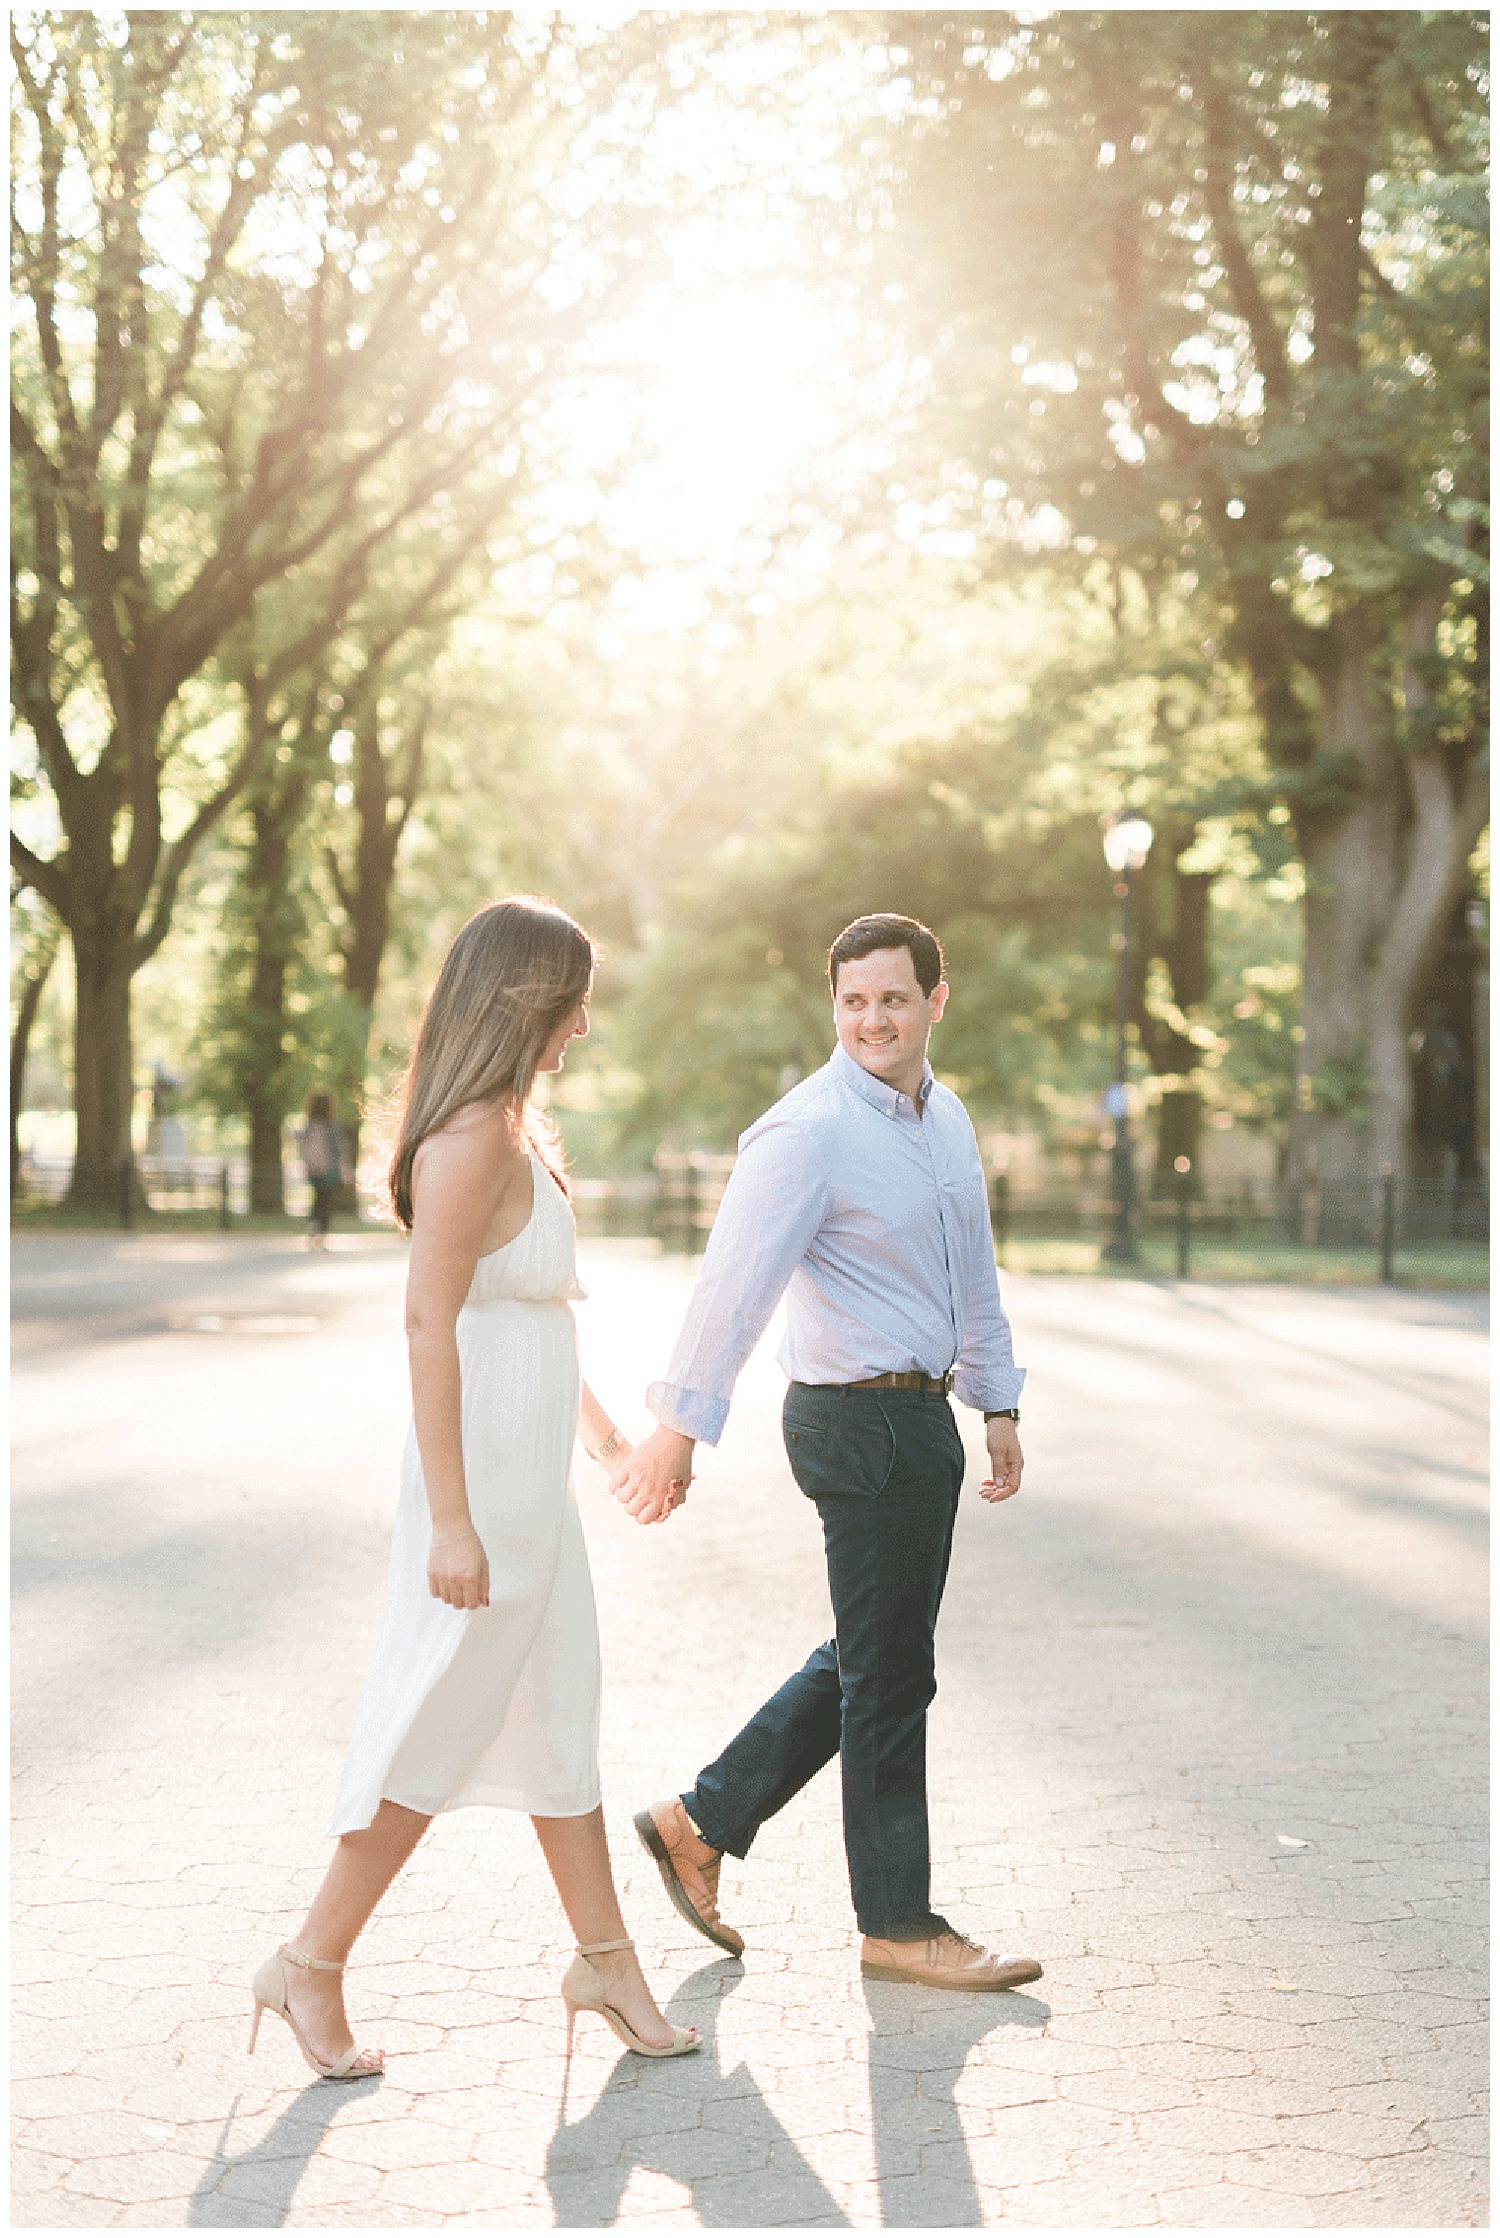 Central Park Engagement Session | NYC Weddings | Manhattan | www.redoakweddings.com